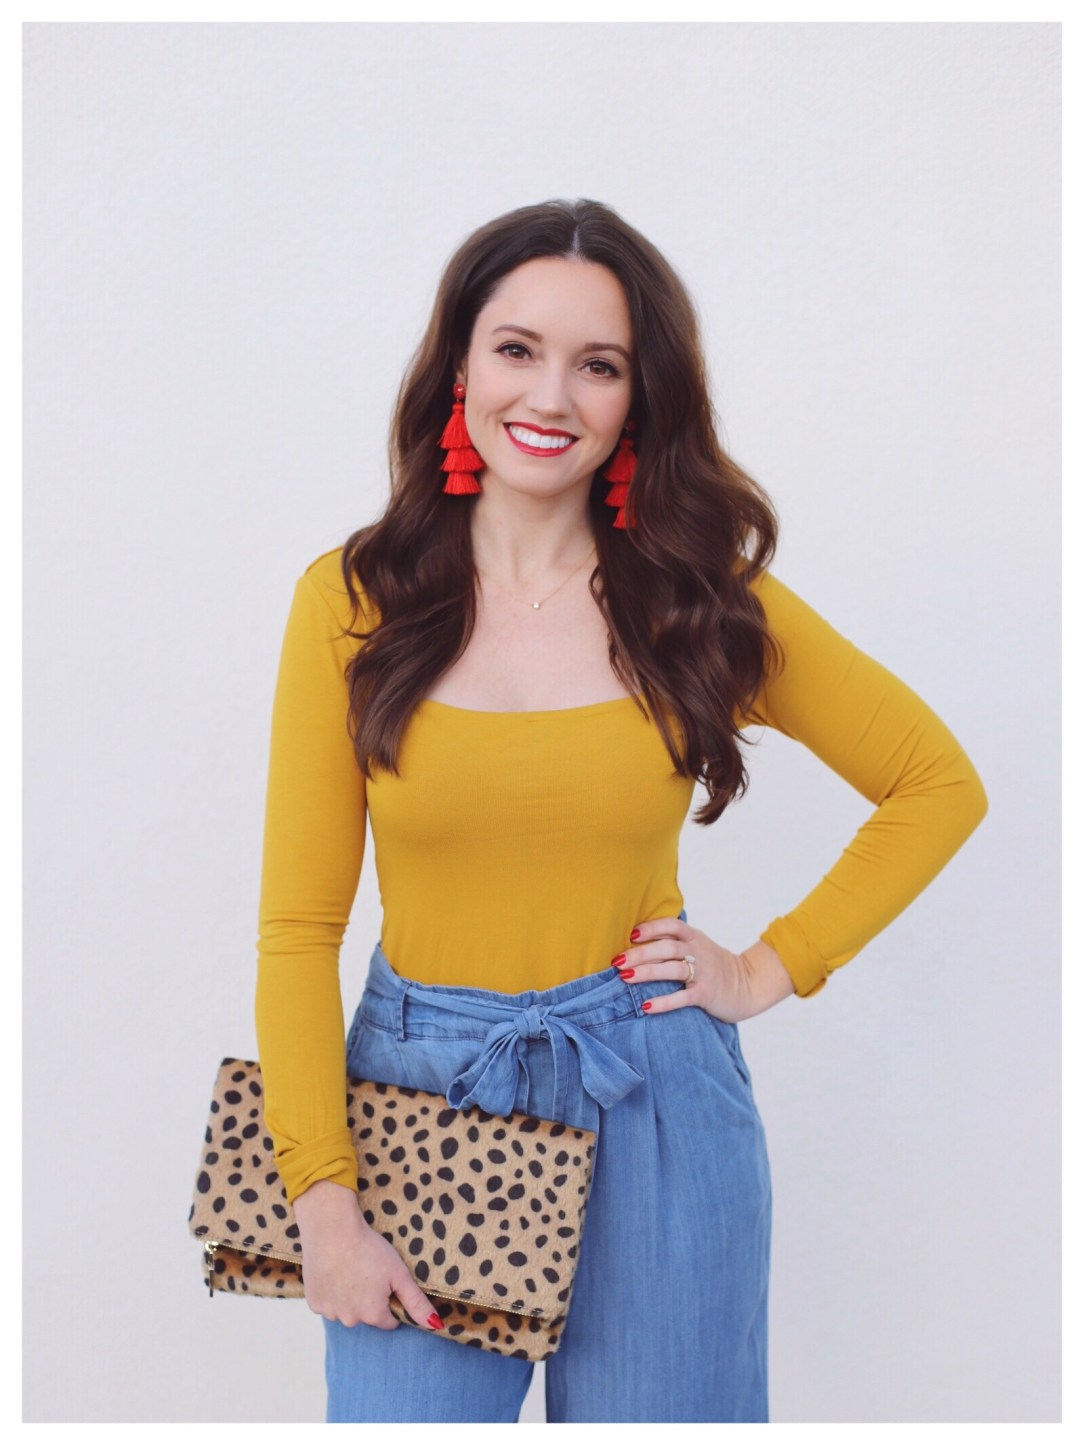 FiveFootFeminine with Cheetah Print Clutch